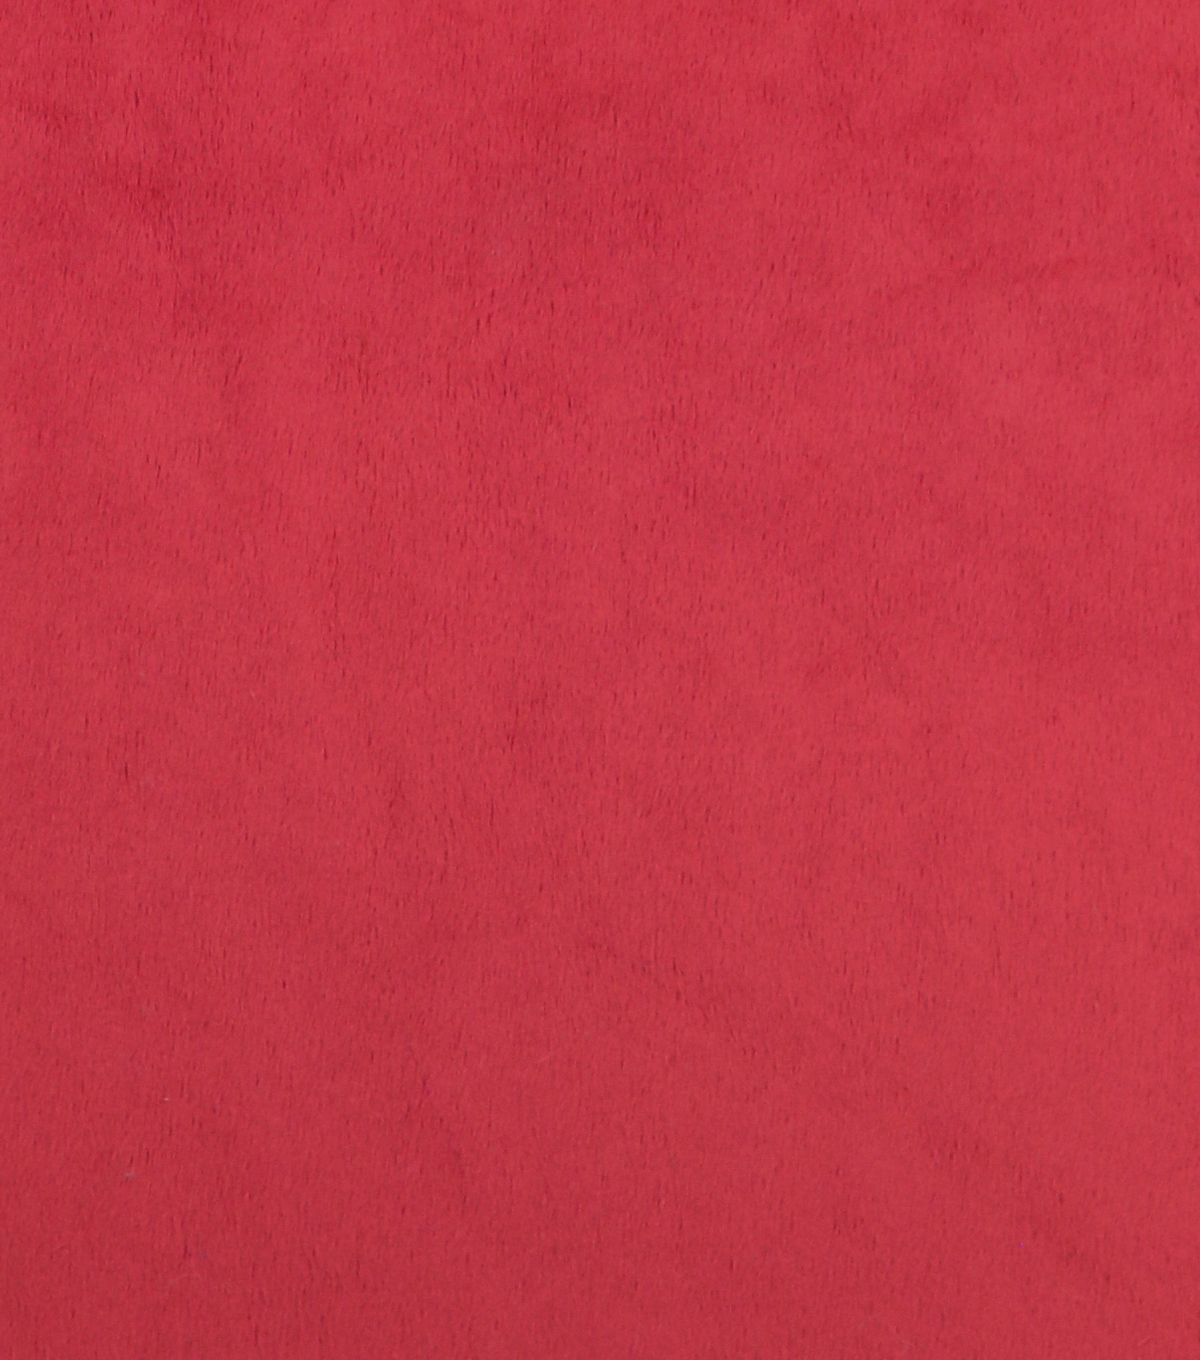 Soft & Minky Fleece Fabric -Solids, Red